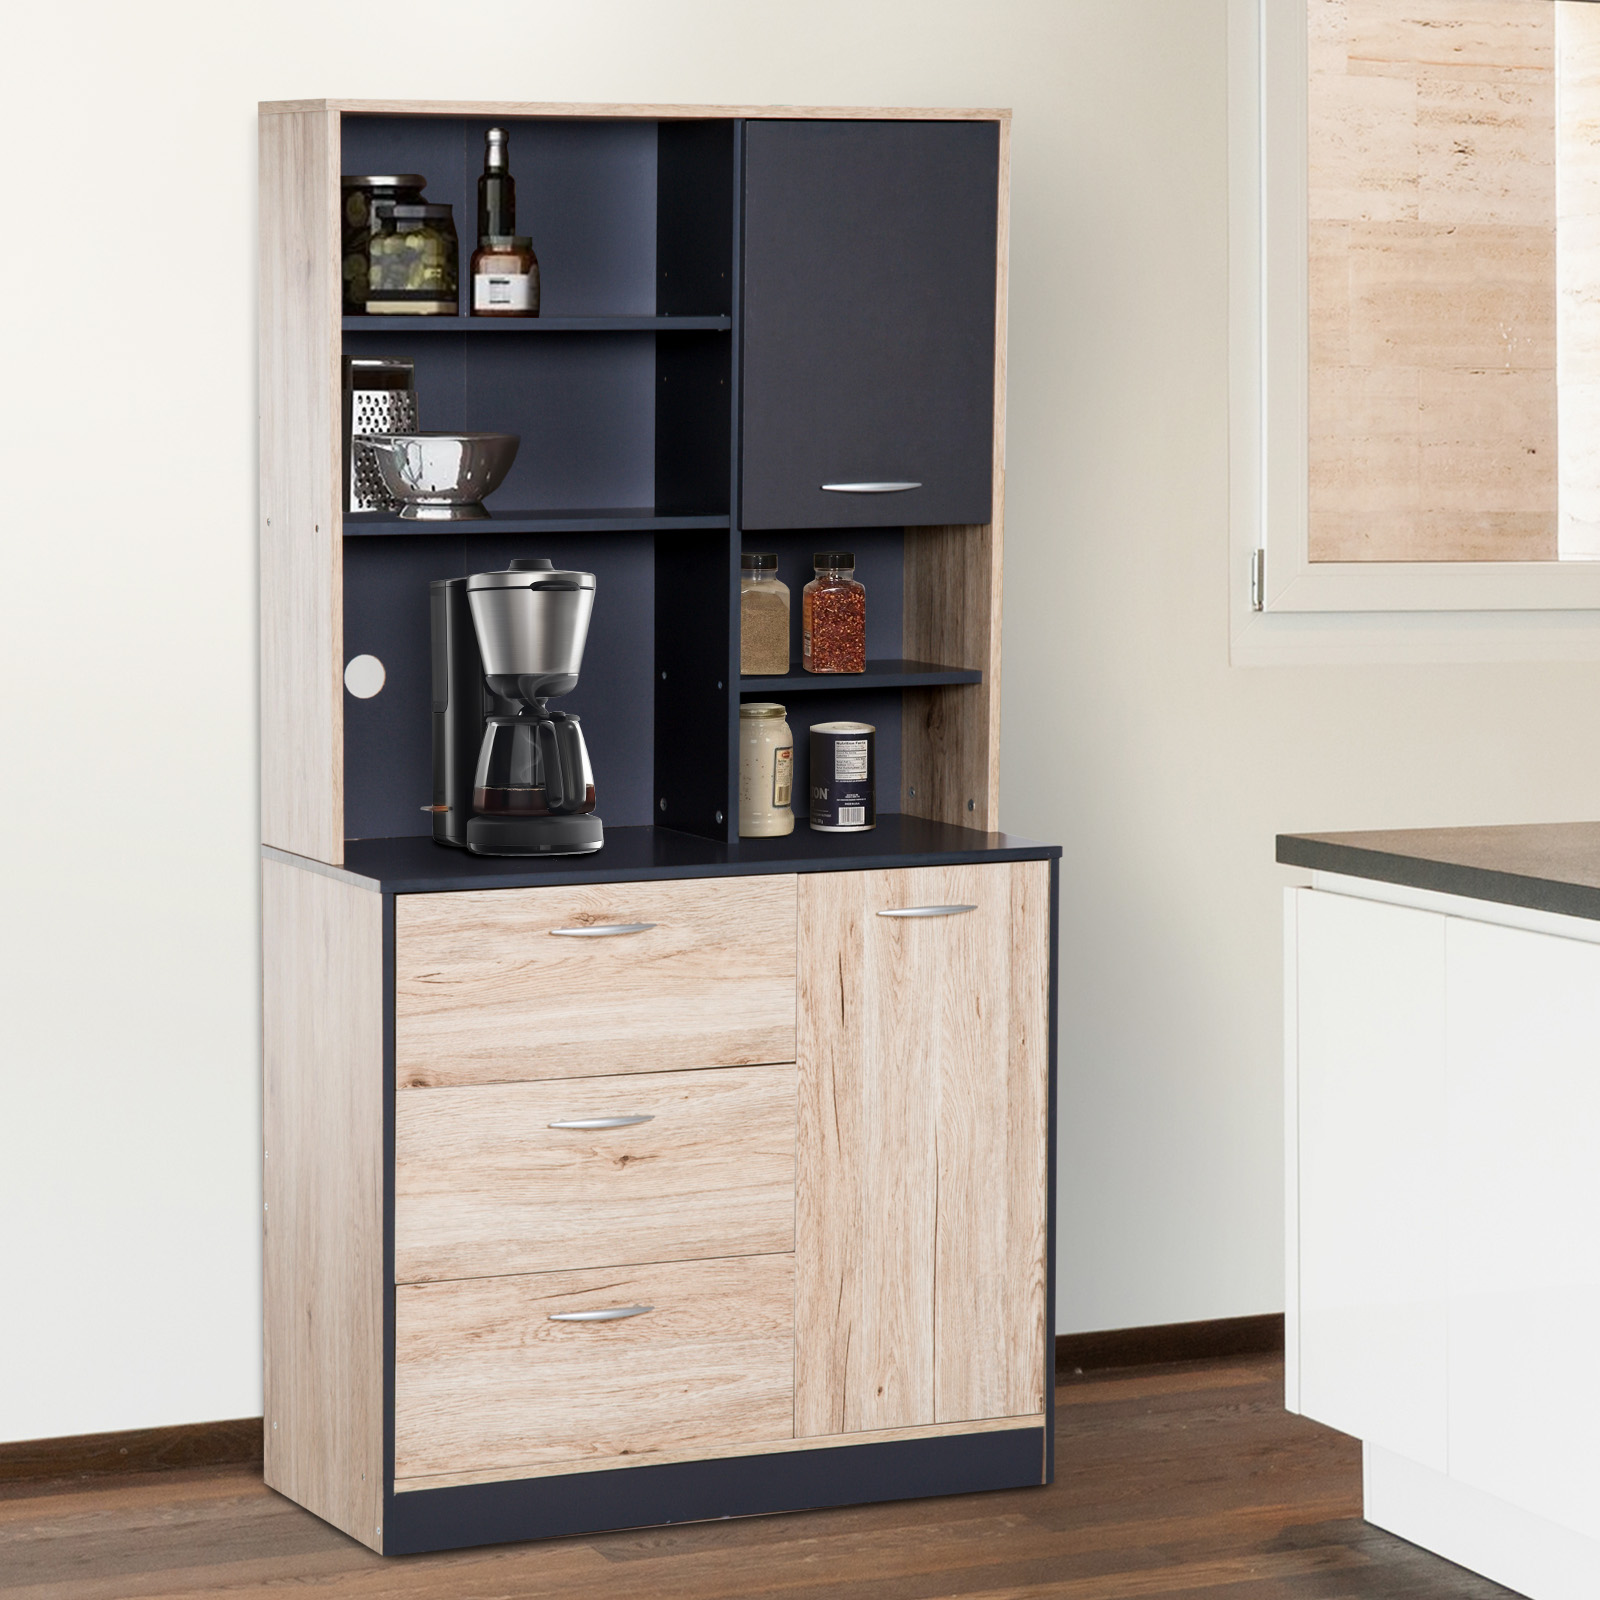 Superb Details About 66 5 Kitchen Storage Pantry Cabinet Hutch Buffet Server Microwave With 2 Doors Home Interior And Landscaping Analalmasignezvosmurscom